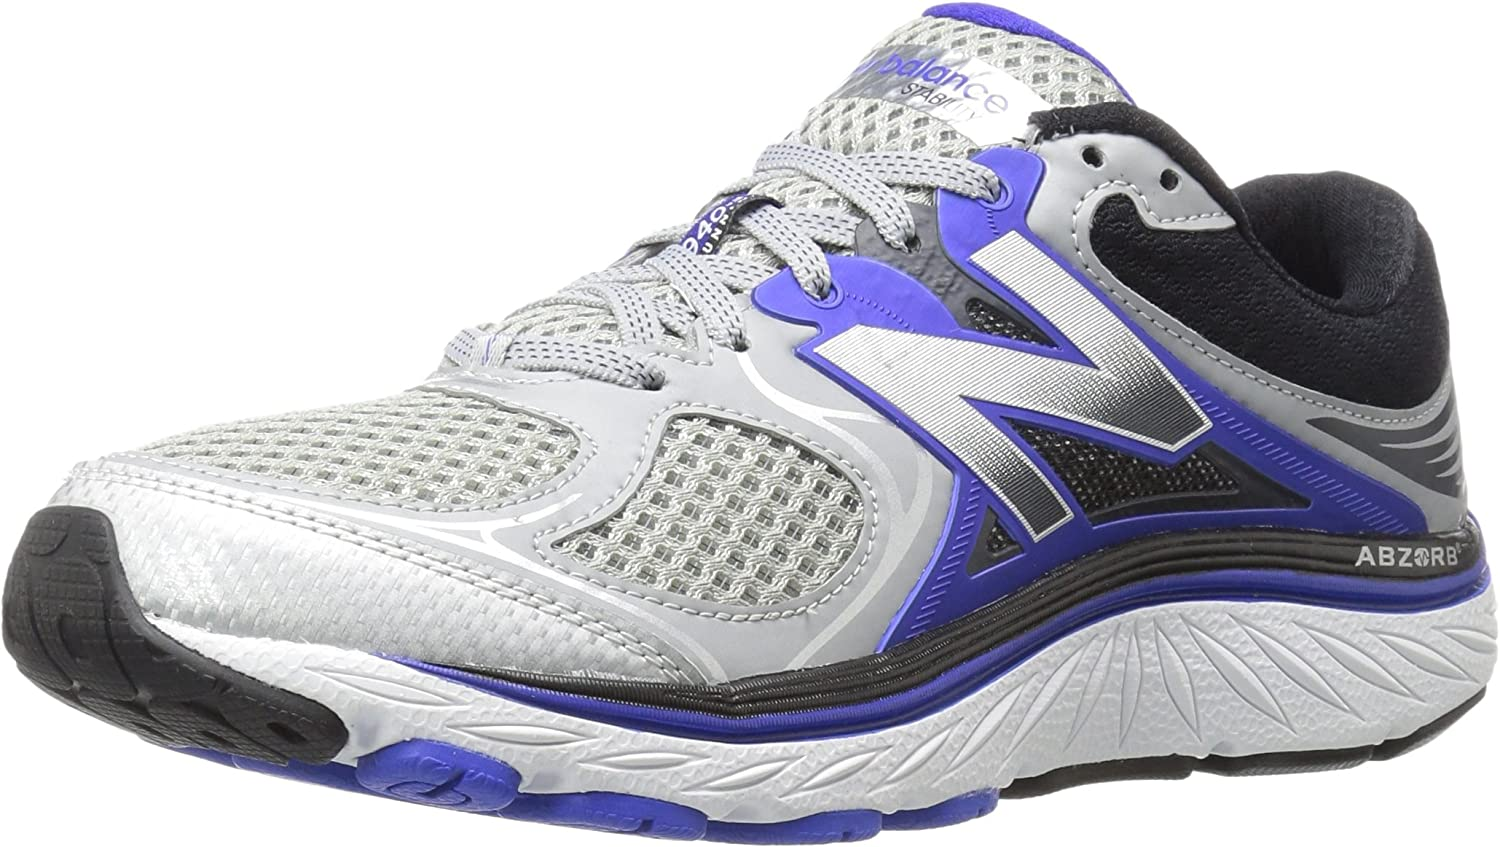 [ニューバランス] Men's M940 Ankle-High Running Shoe シルバー 12.5 2E US